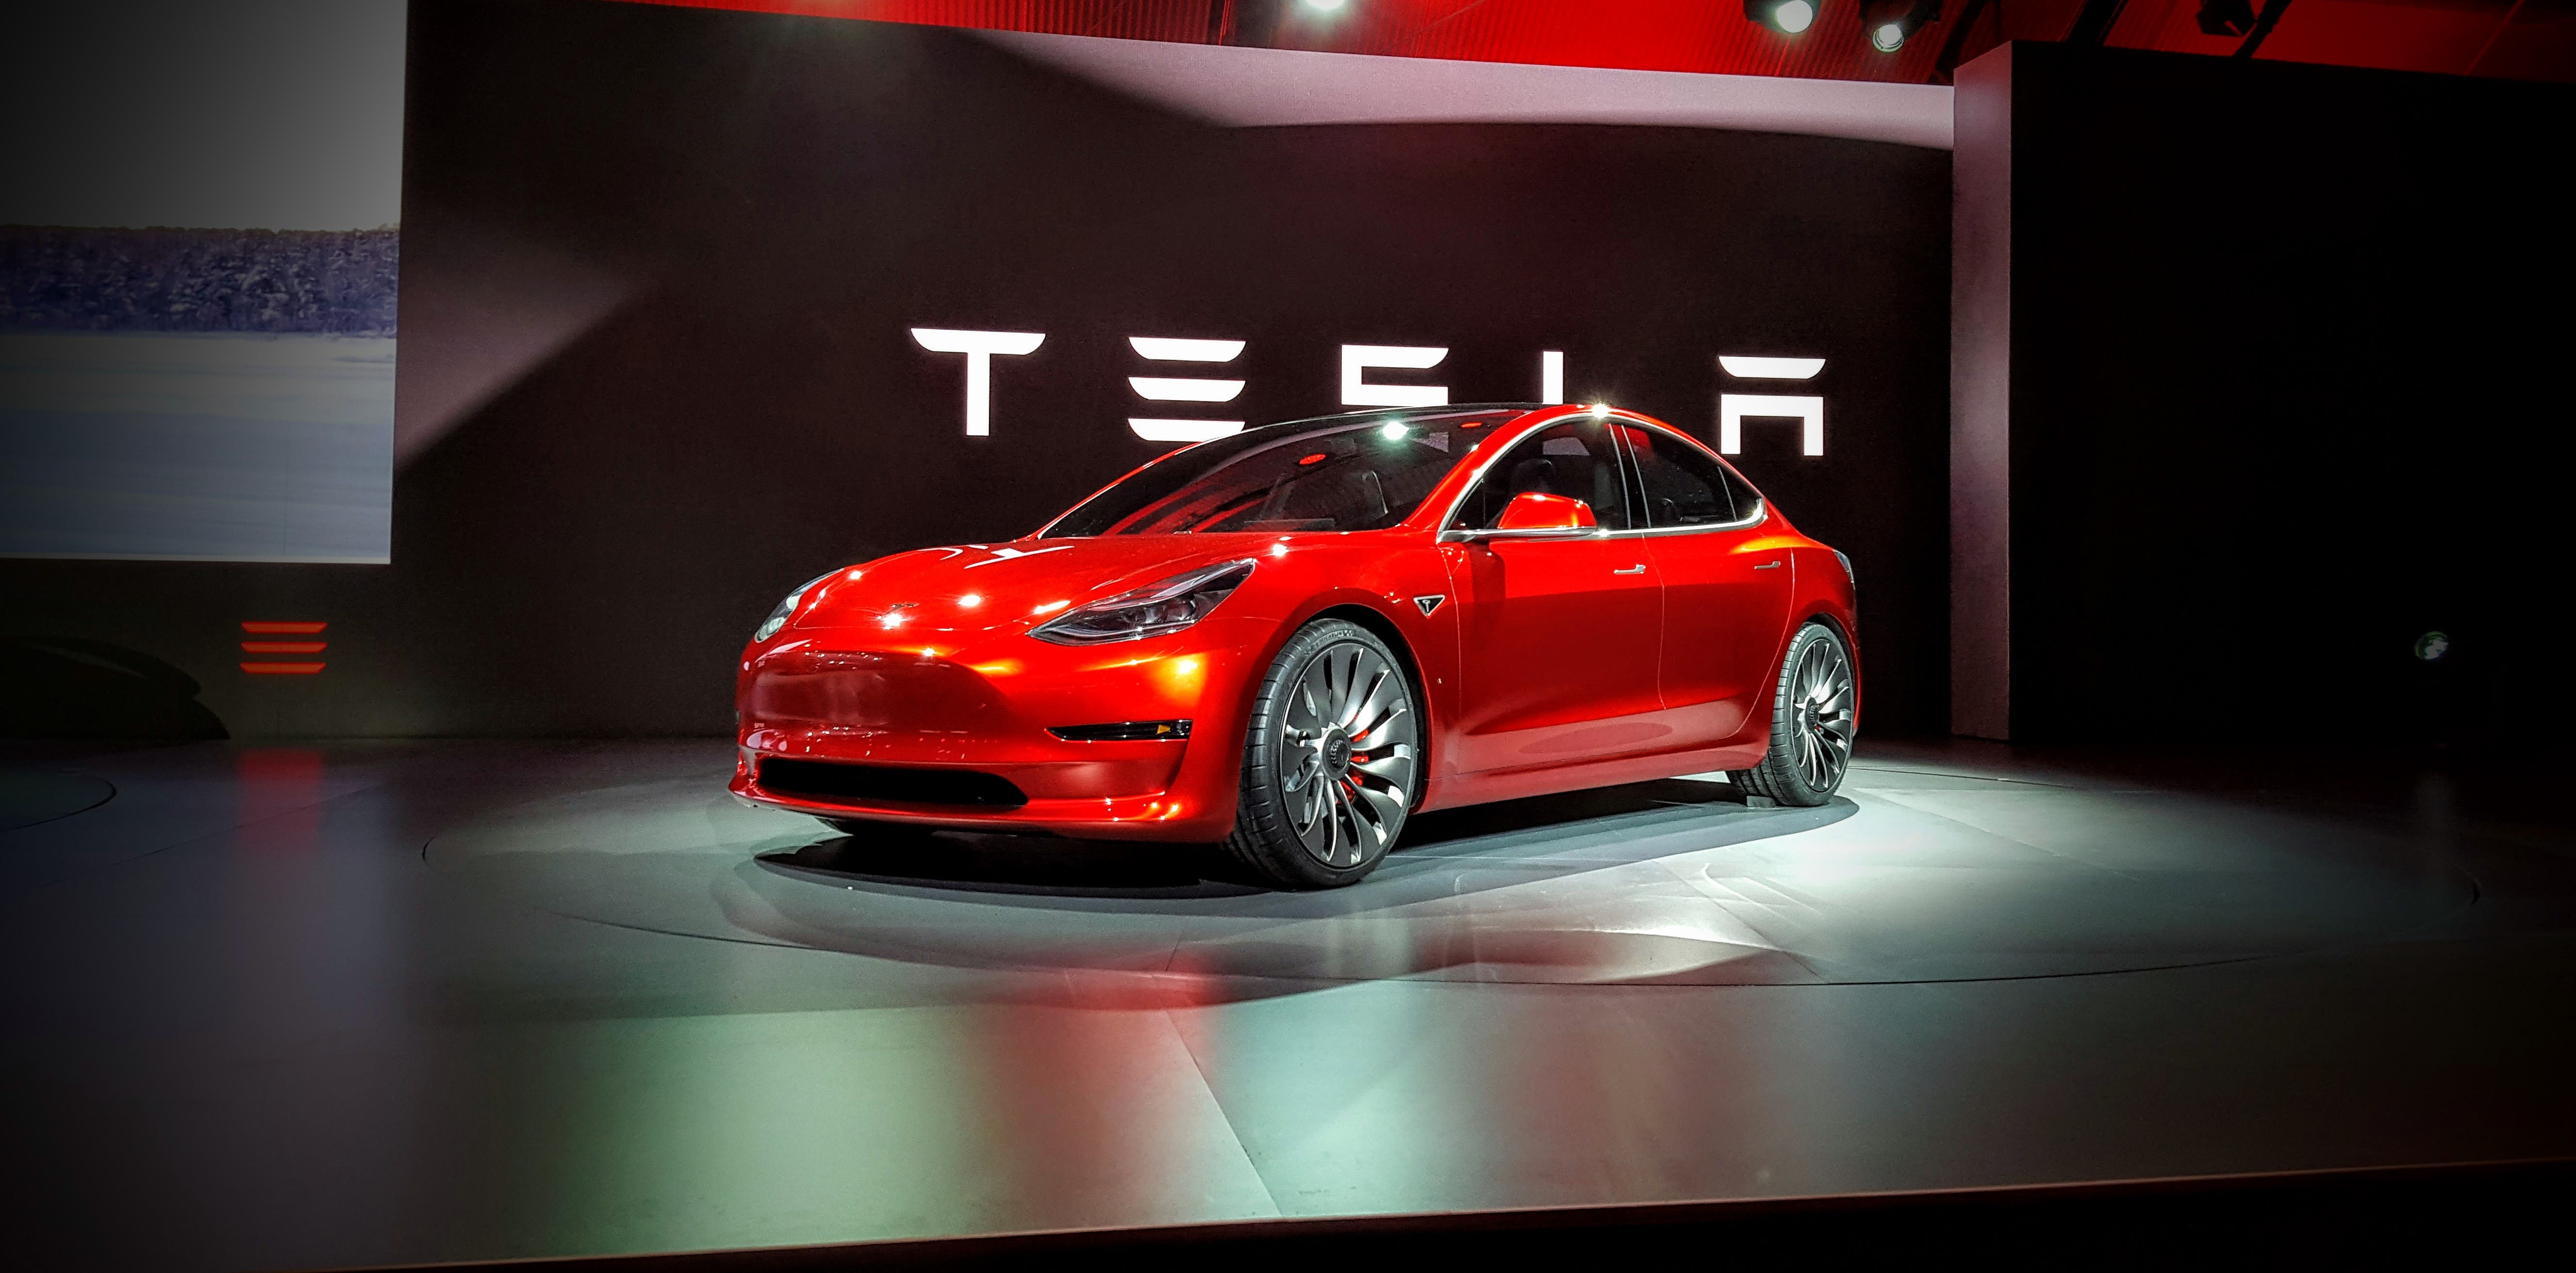 7,000 Solar Train Stations … Self-Driving Car Evolution … 100% Wind Electricity In Denmark … Tesla Model 3 Updates … (Top CleanTechnica Stories of the Week)